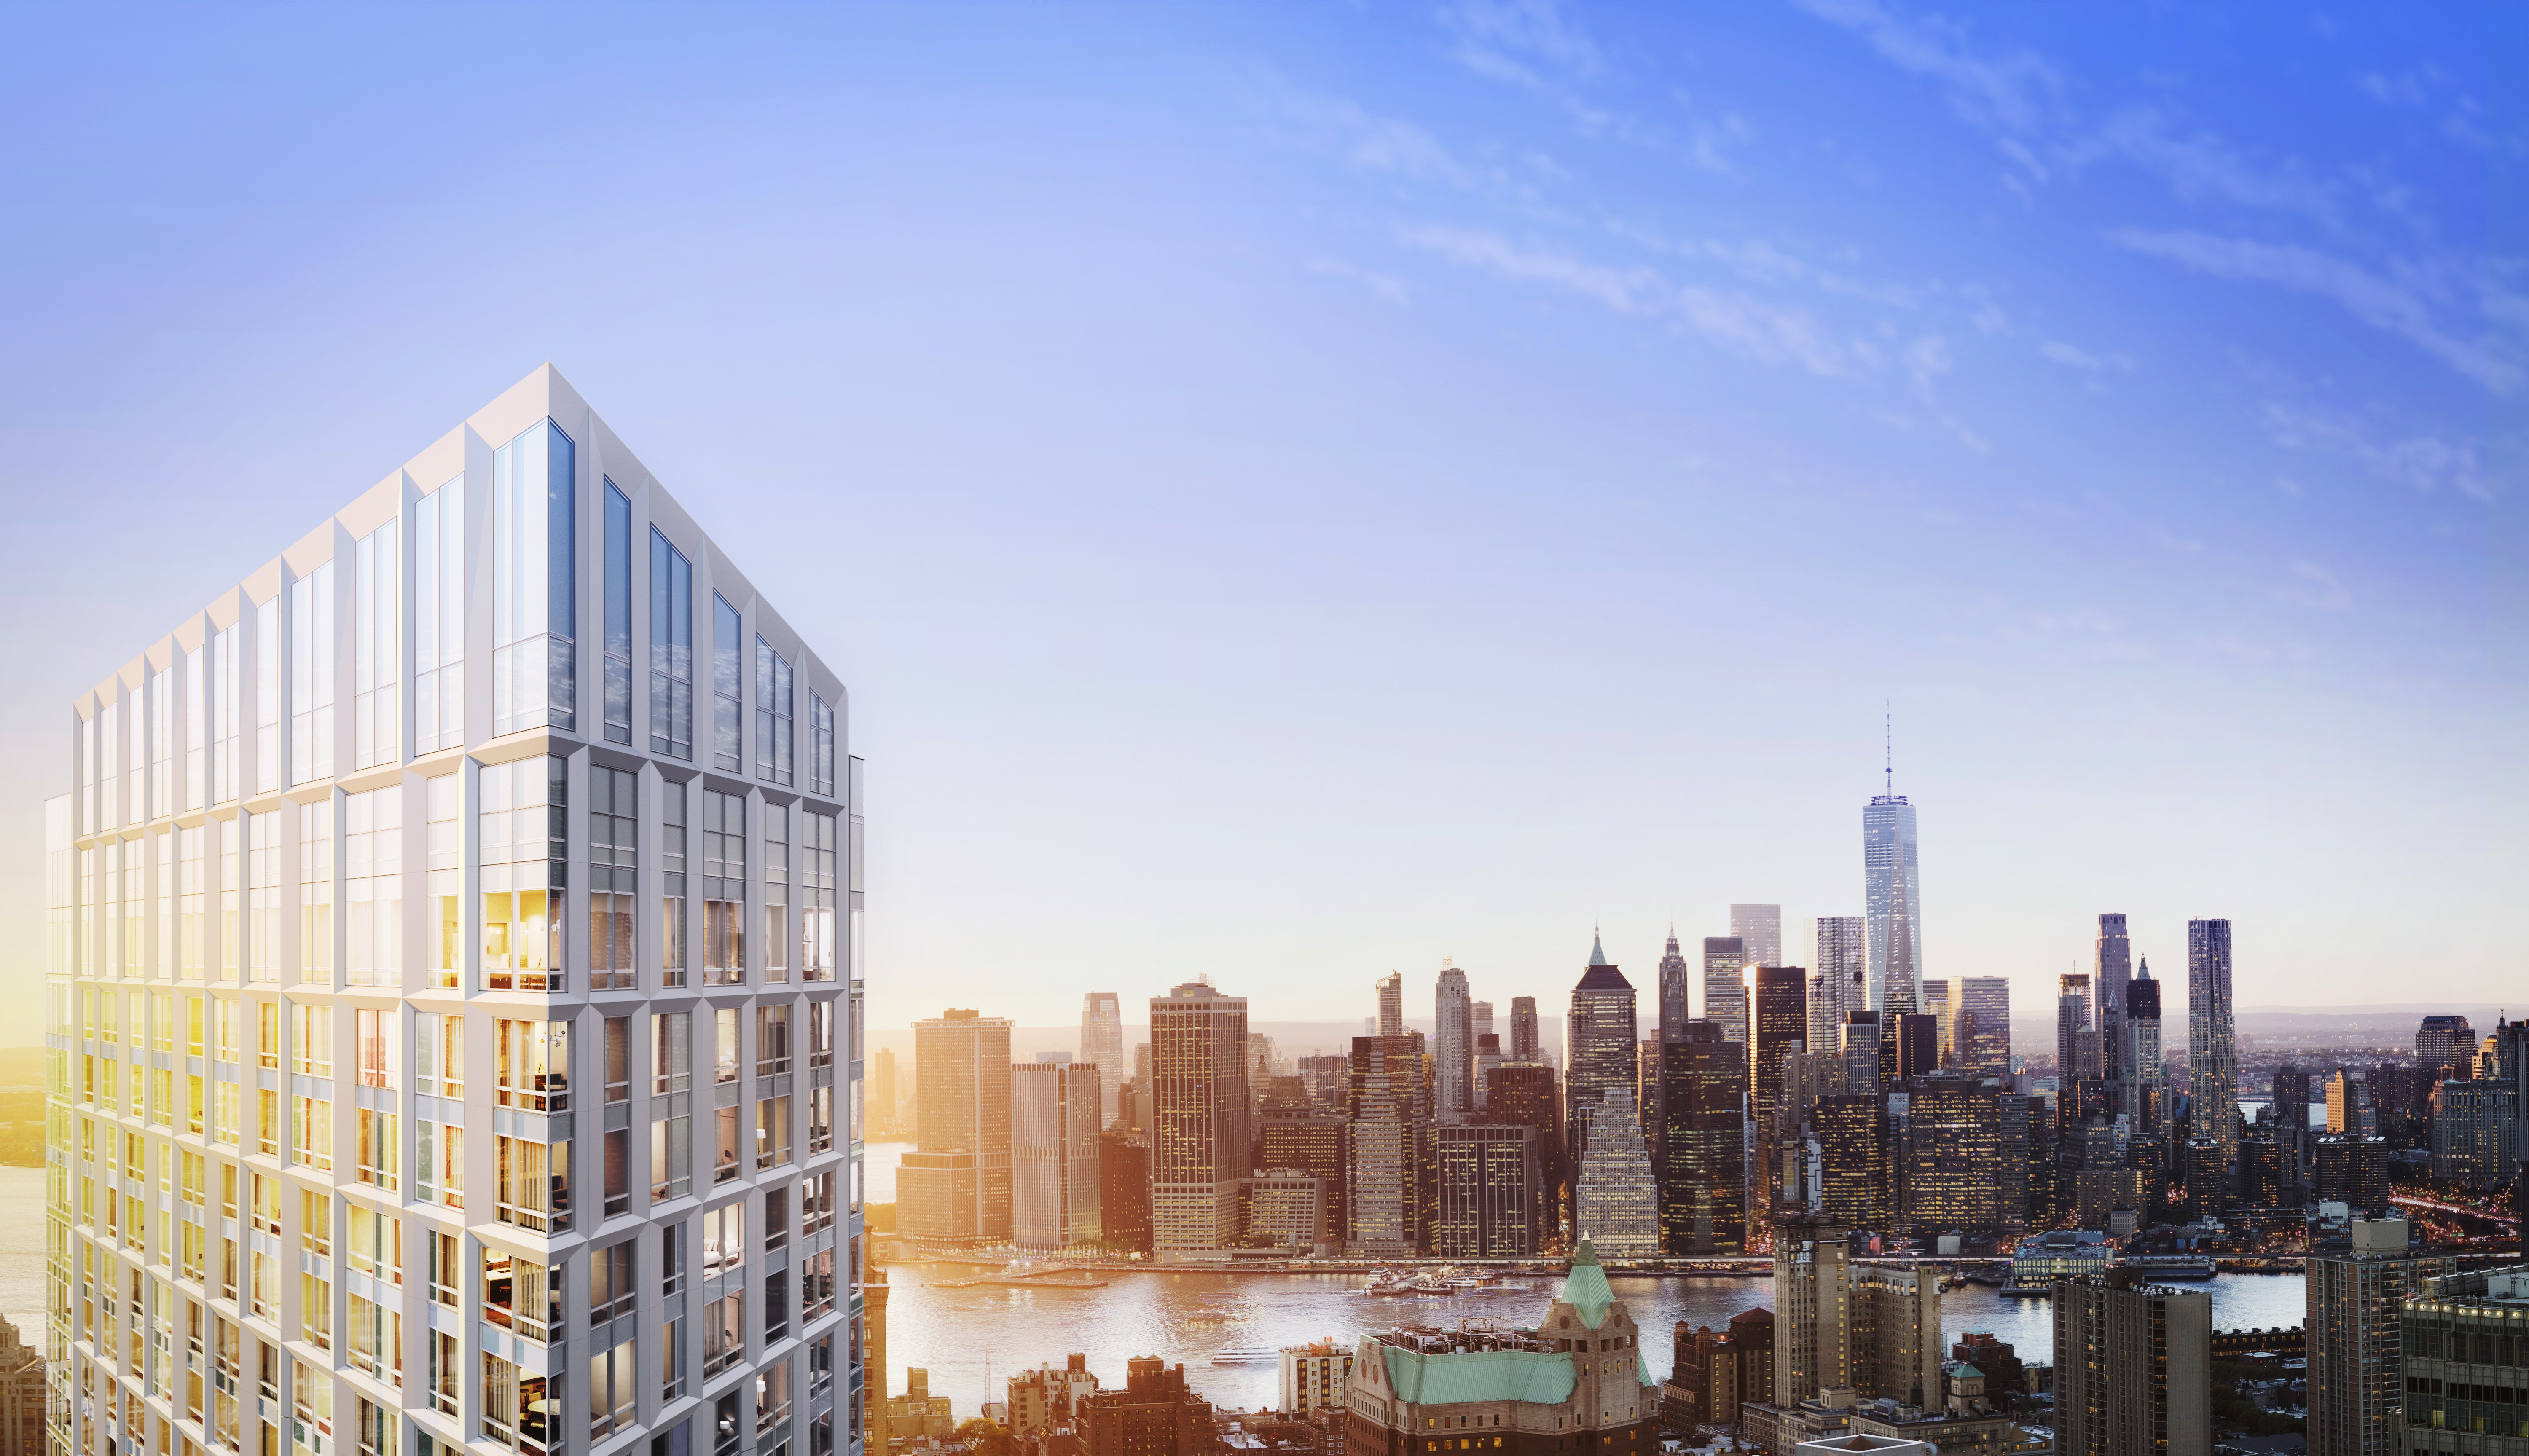 Brooklyn Point Extell Development S First Tower In The